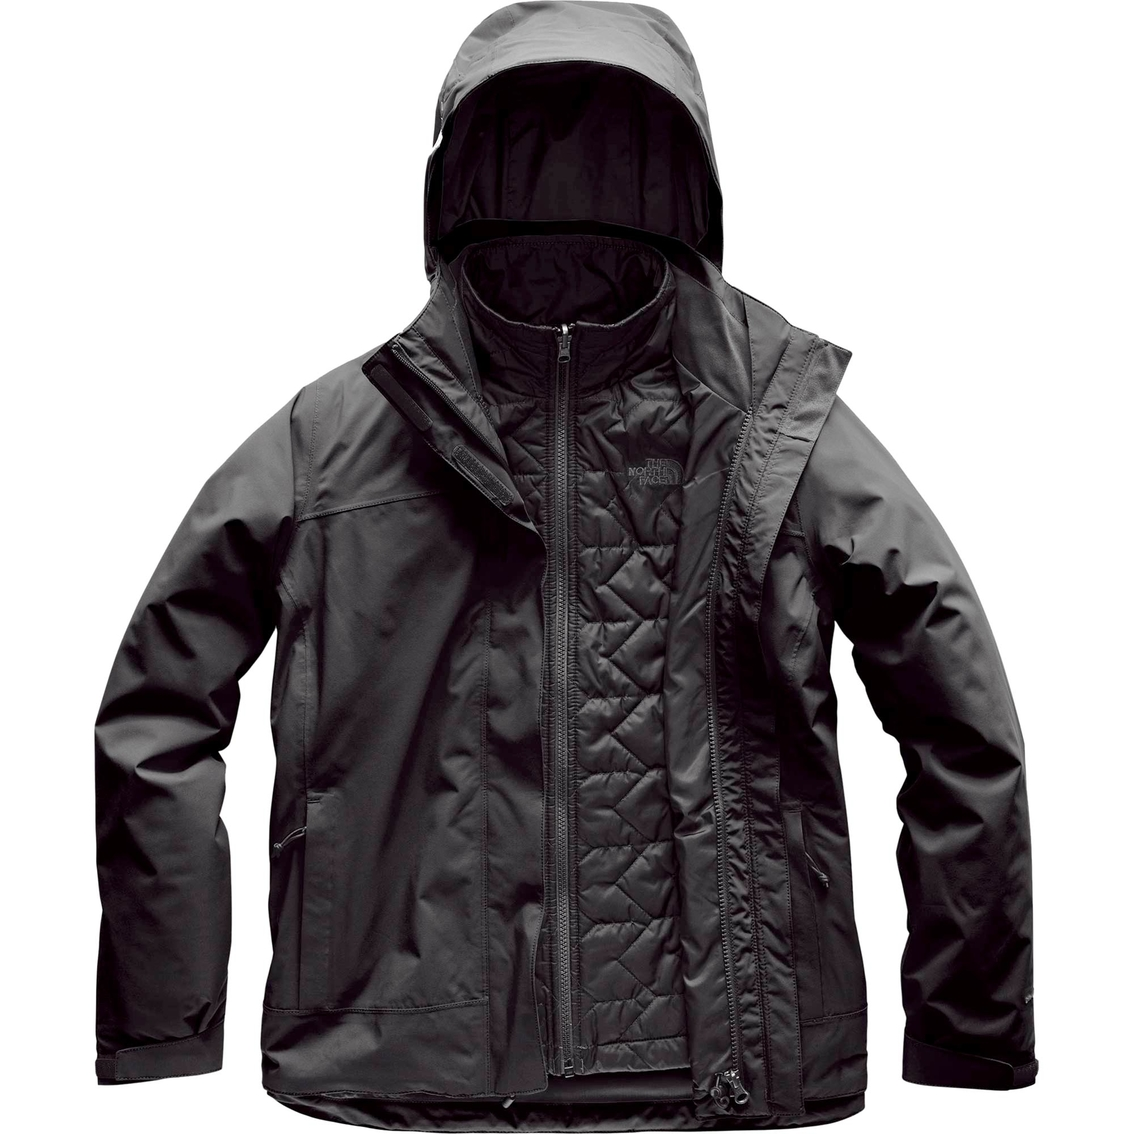 c0b845f6d The North Face Carto Triclimate Jacket | Jackets | Apparel | Shop ...